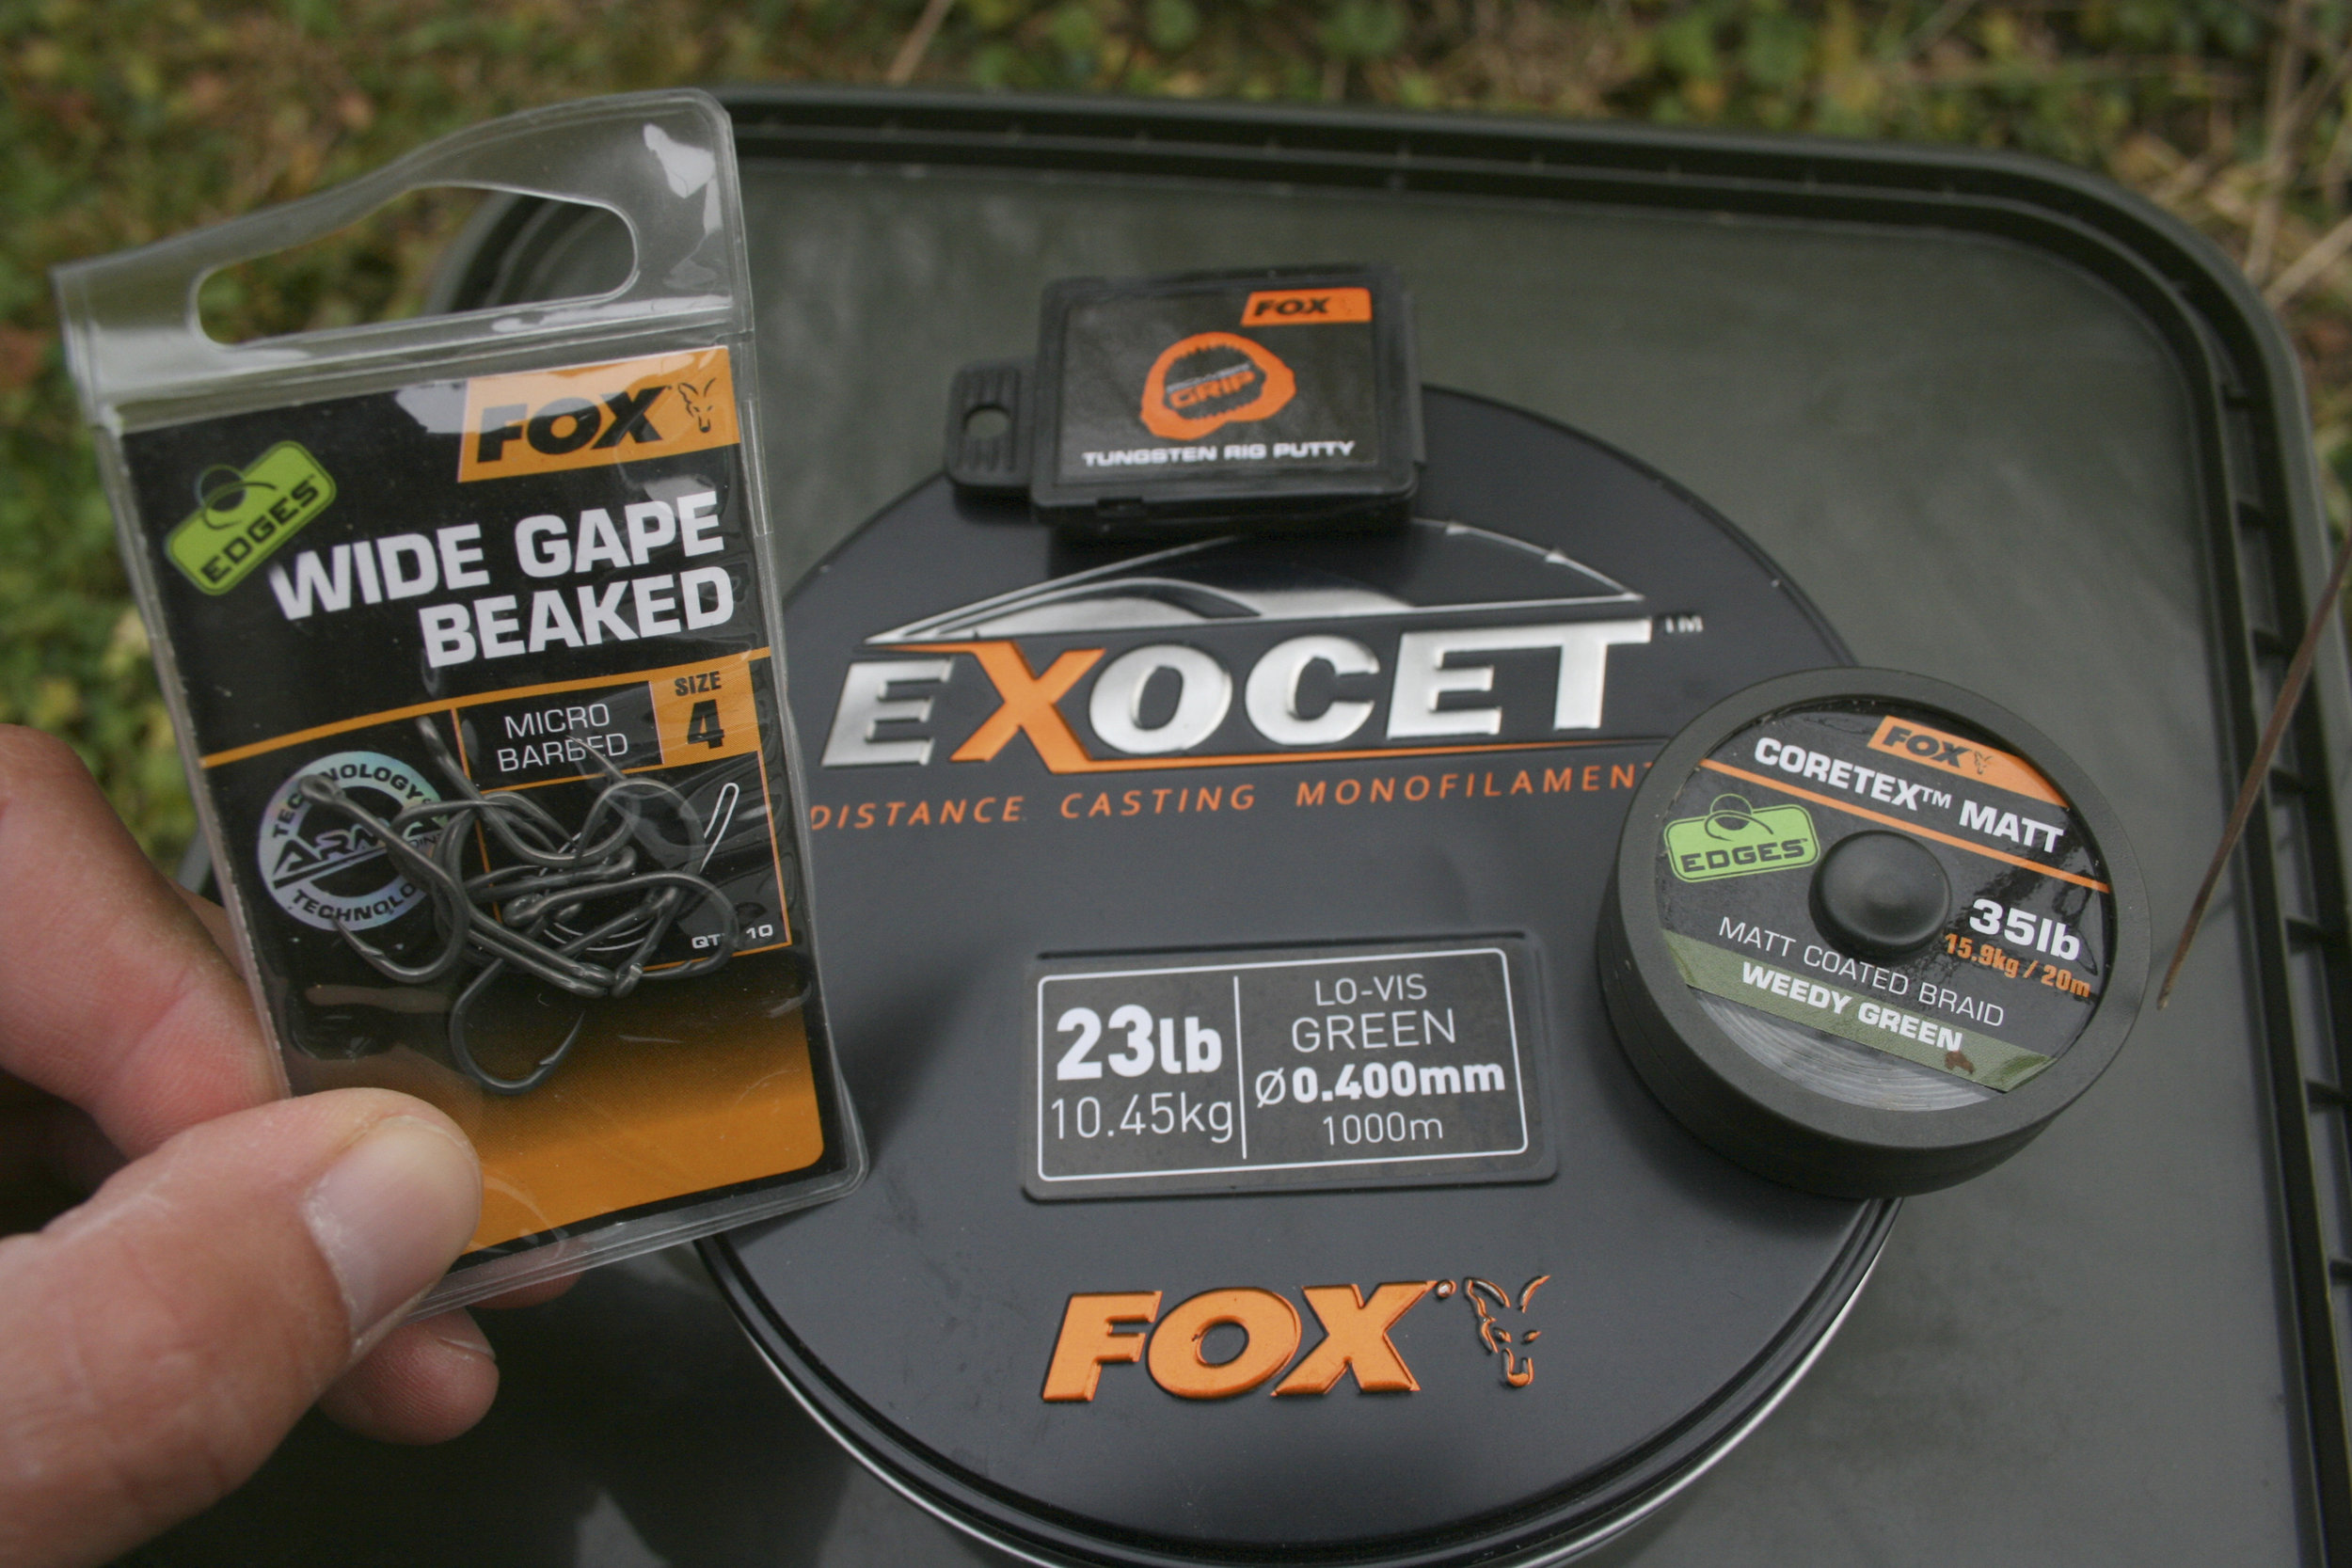 Fox products I rely on